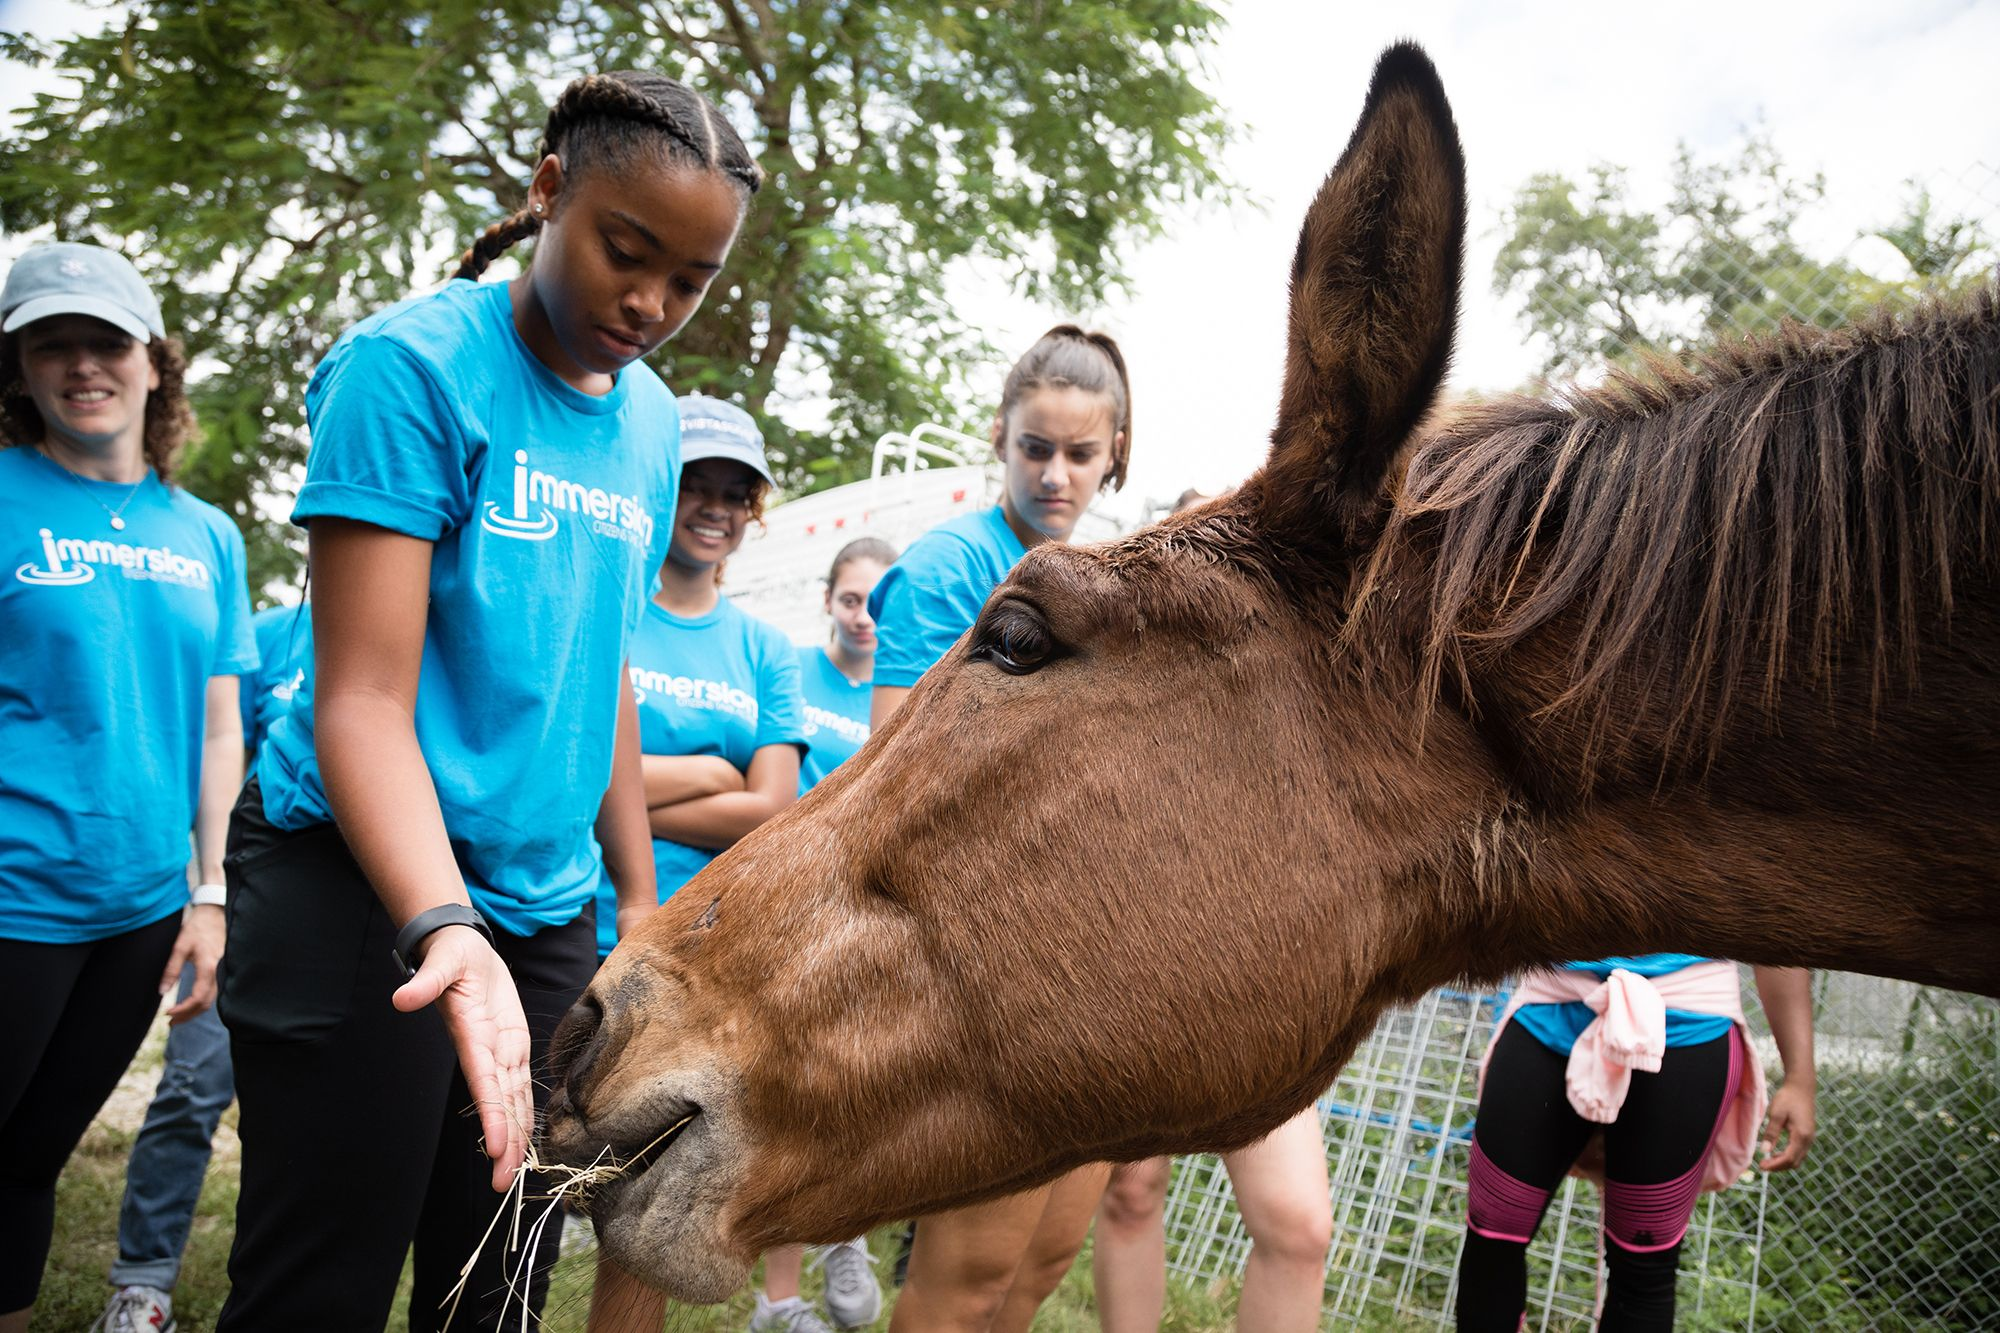 Student pets a horse on an Immersion experience in the Everglades.